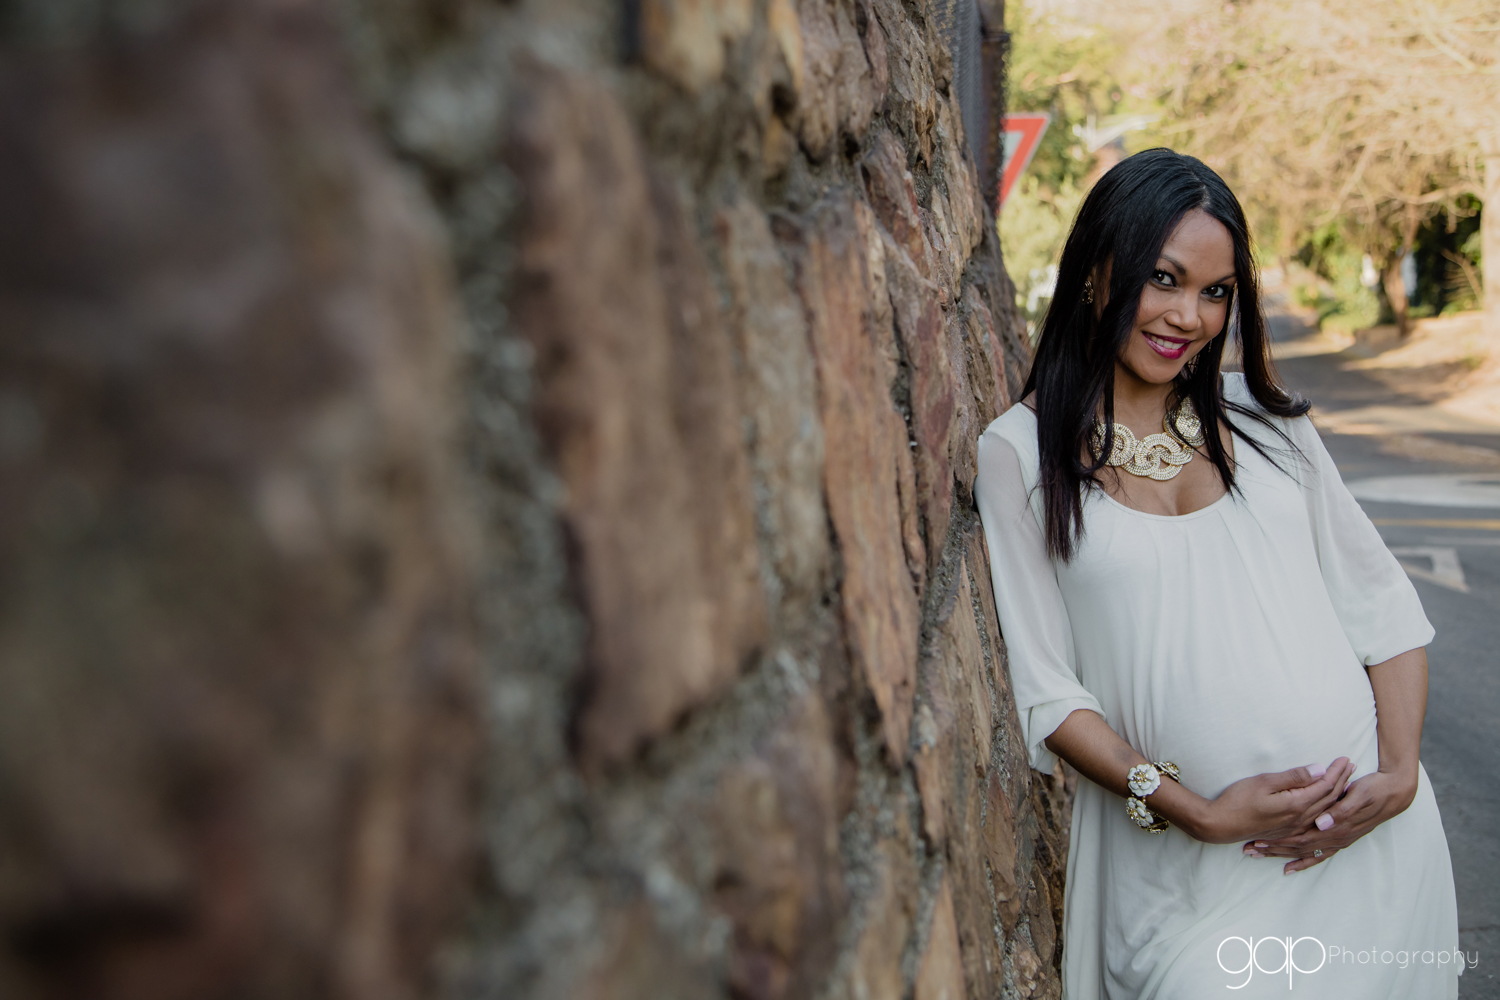 pregnancy shoot - IMG_0041